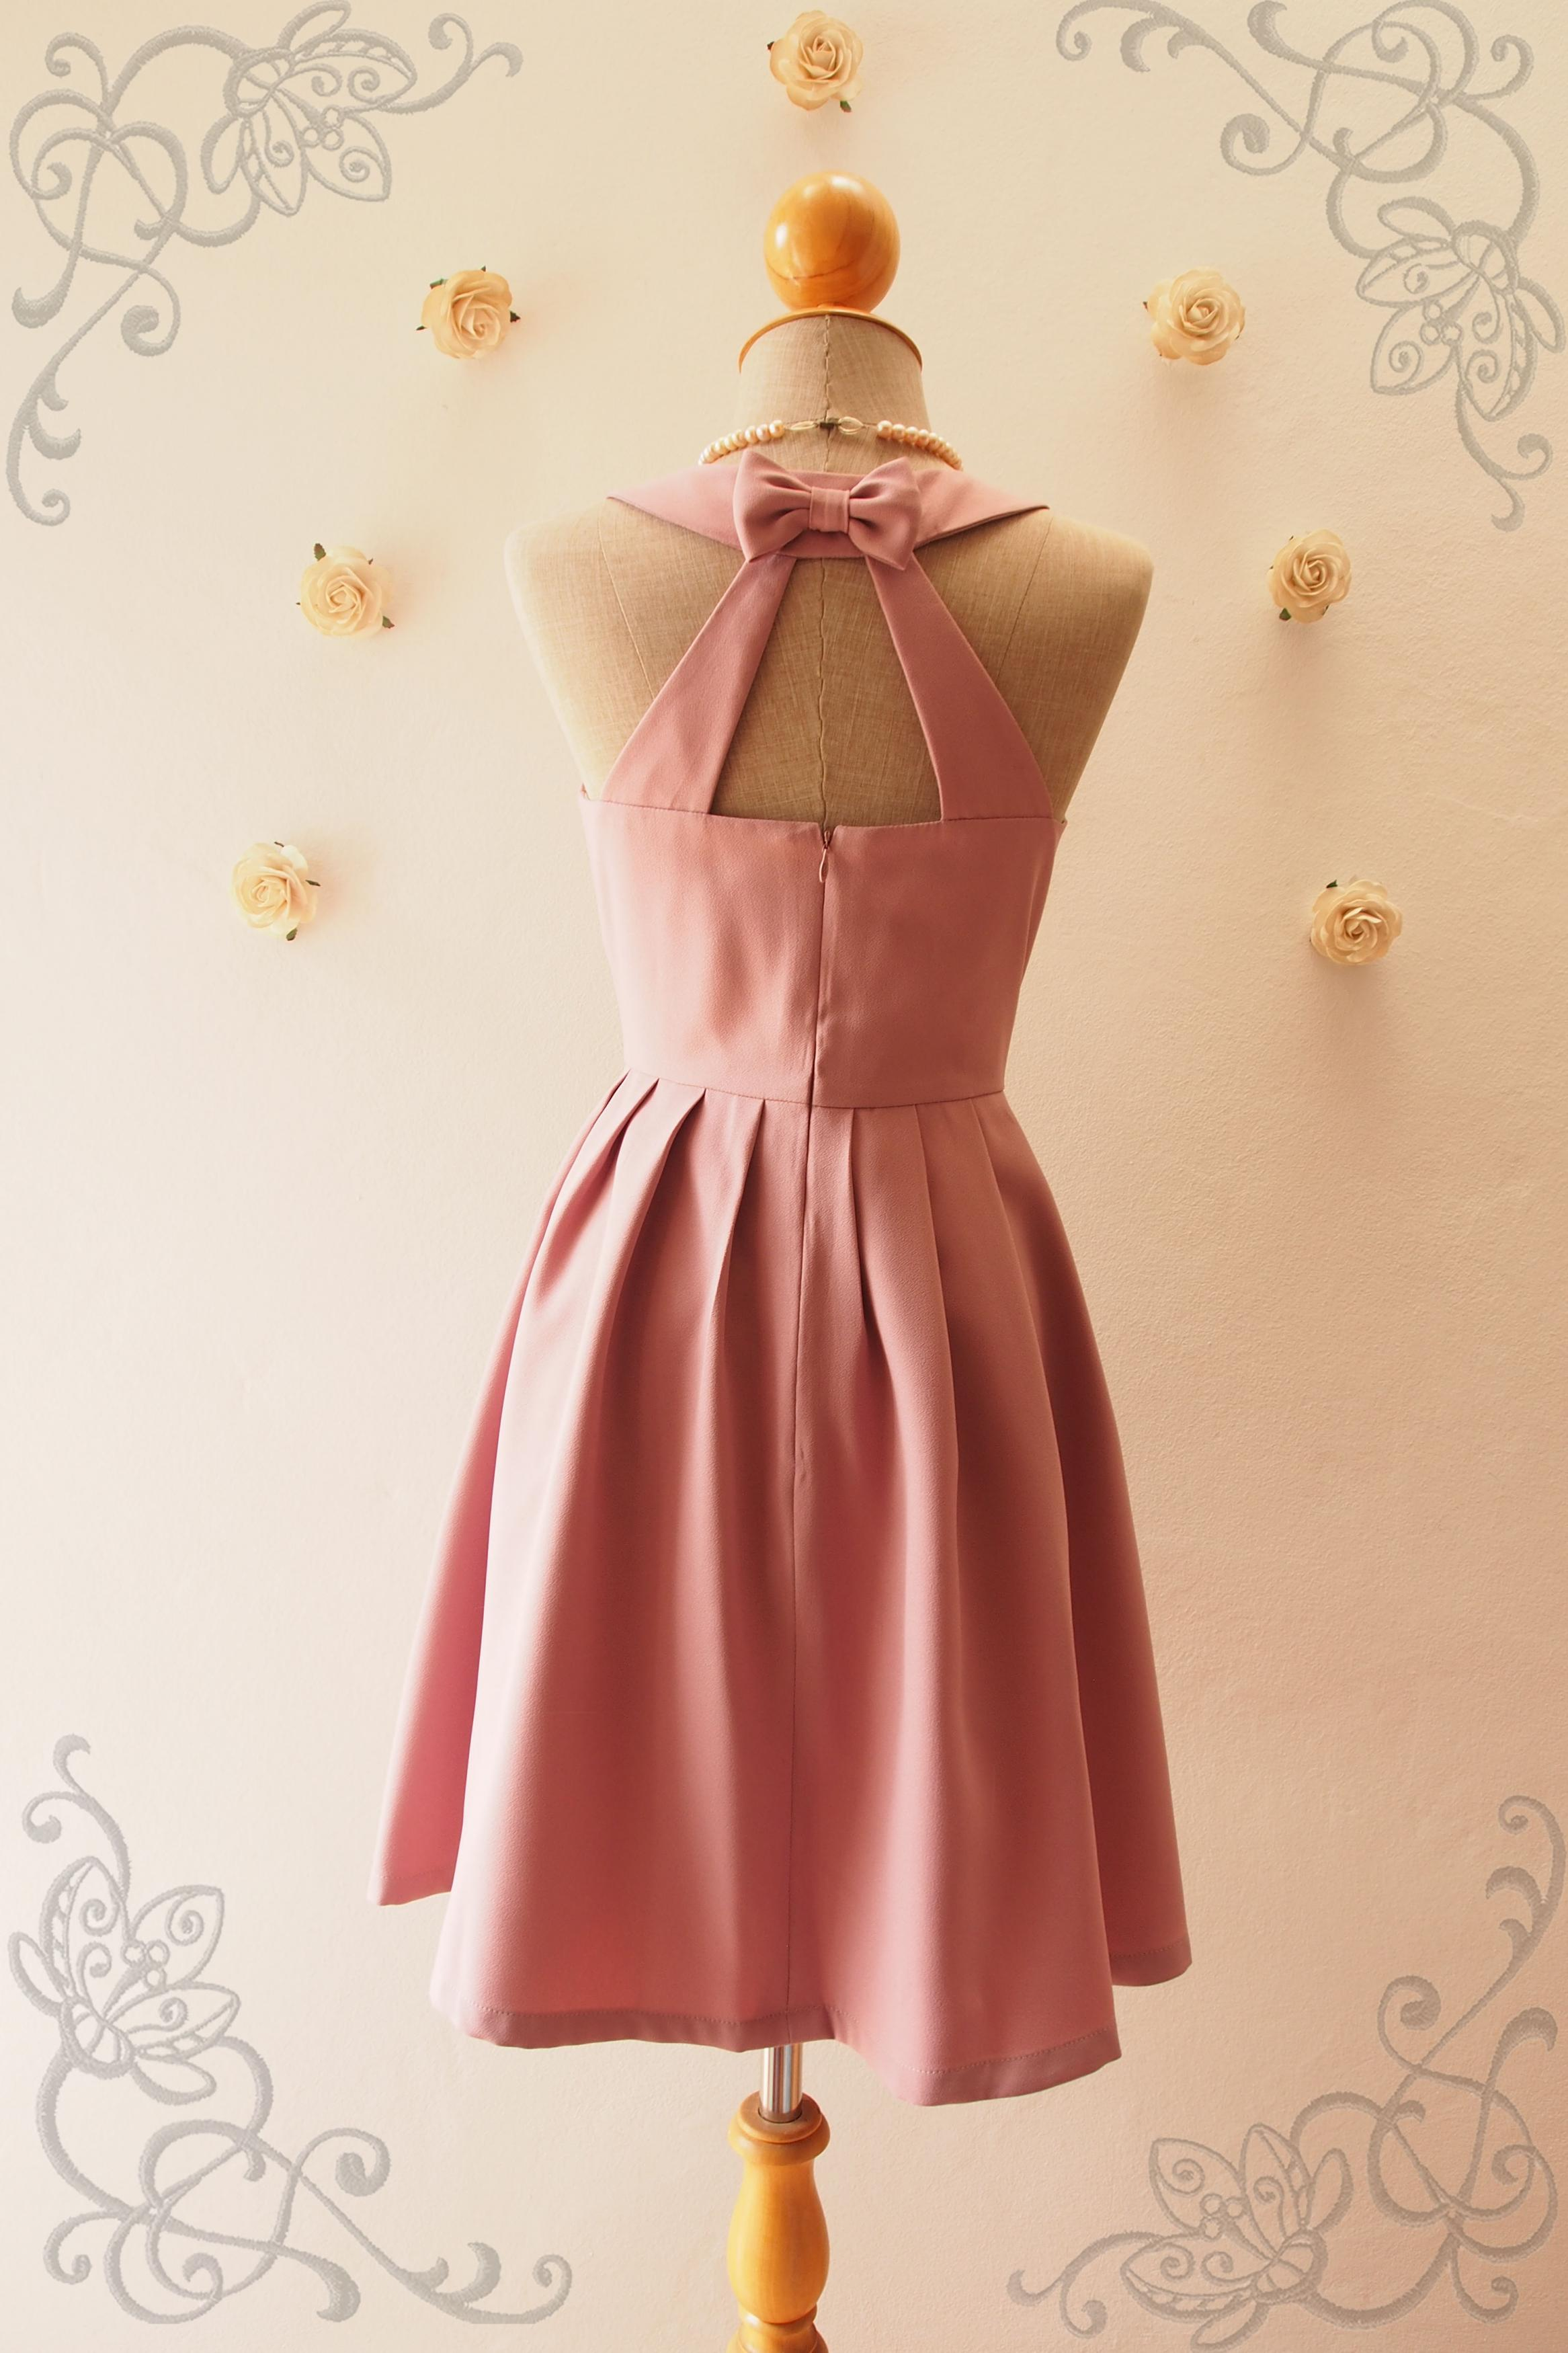 Love potion nude pink dressnude bridesmaid dressnude pink love potion nude pink dressnude bridesmaid dressnude pink party dress vintage inspired audrey hepburn dress skater dress mint formal dress ombrellifo Image collections